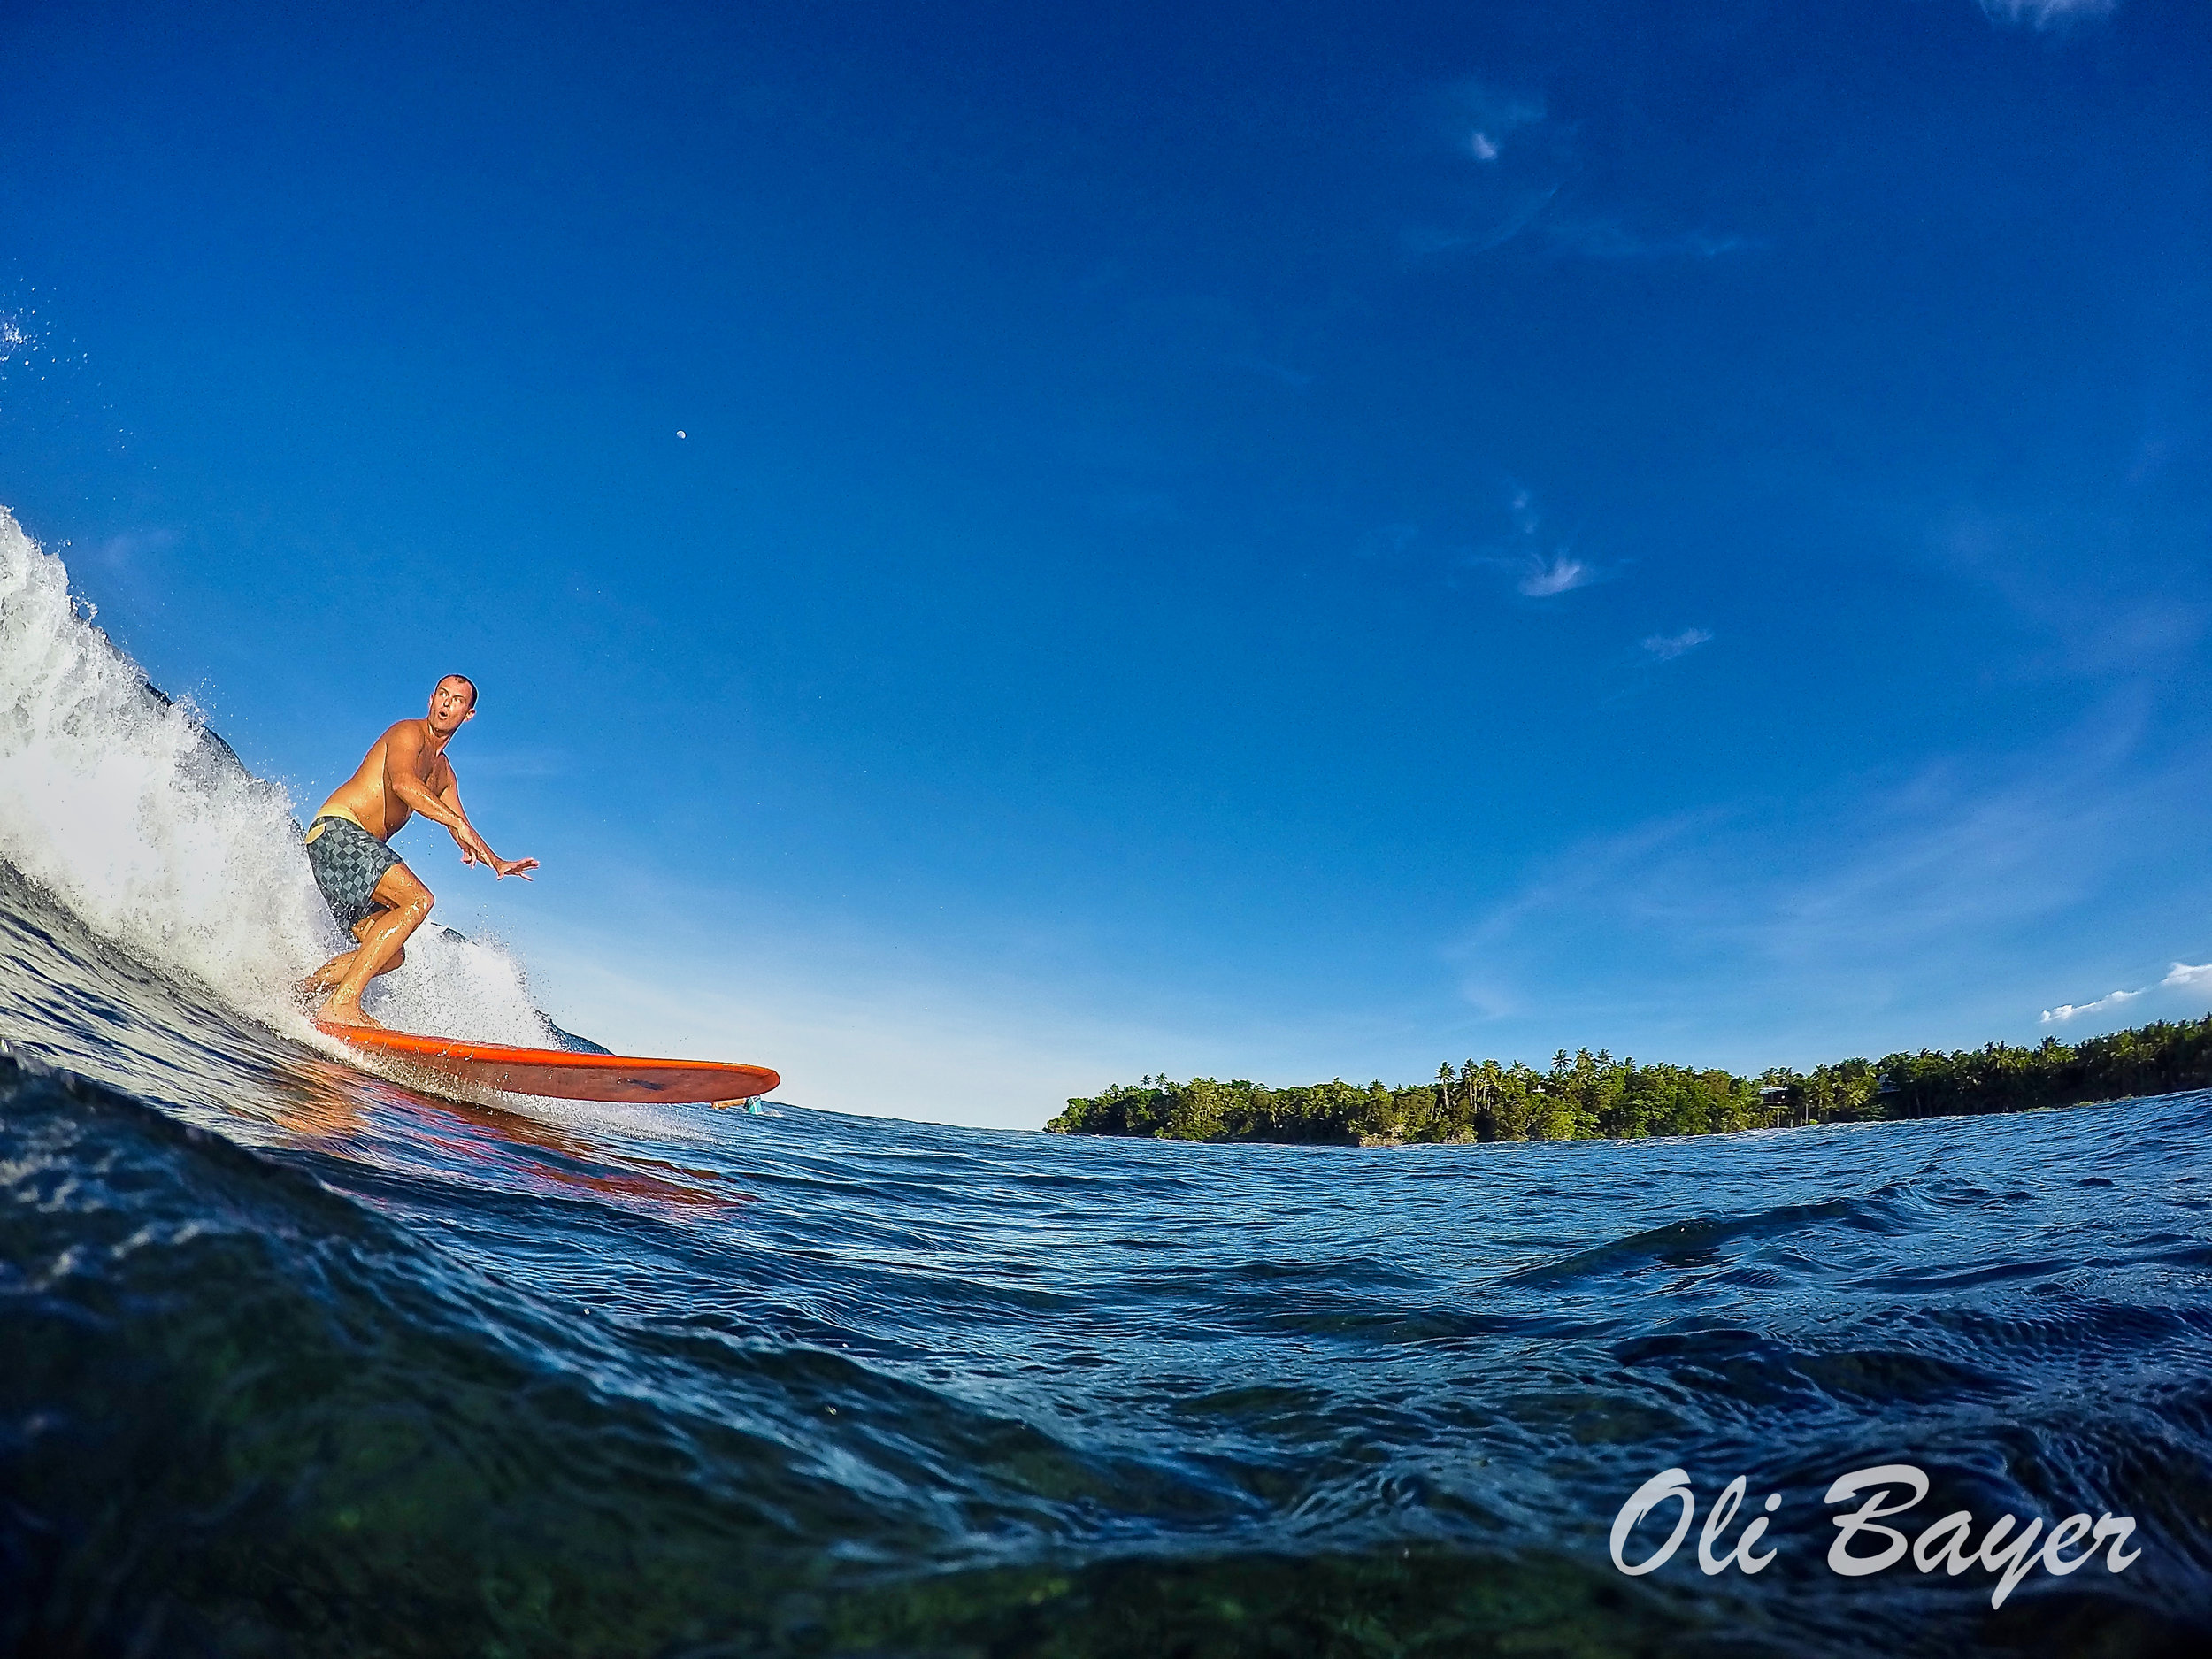 Clear blue skies and riding glassy waves make up the better part of living the island life in Siargao. Photo by Oli Bayer.